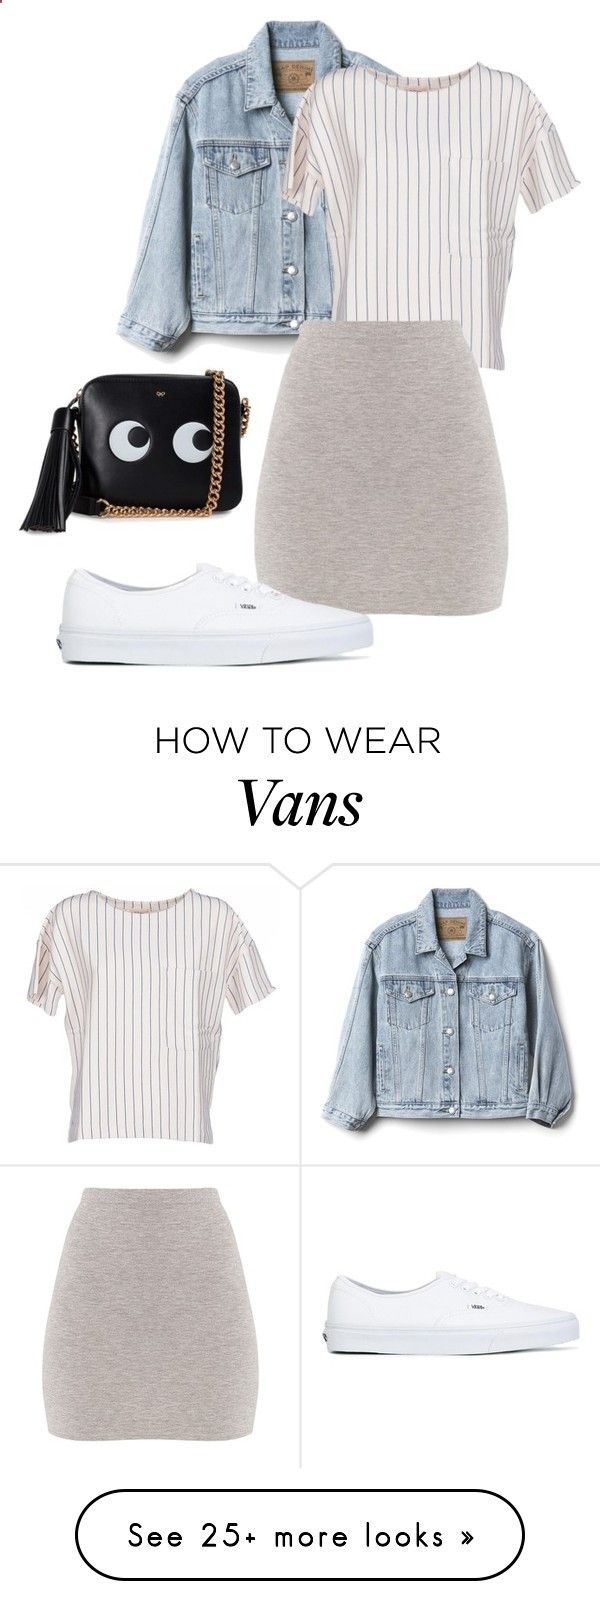 Basic  Cute ☀️ by ghuus15 on Polyvore featuring Gap, BELLEROSE, BasicGrey, Vans and Anya Hindmarch